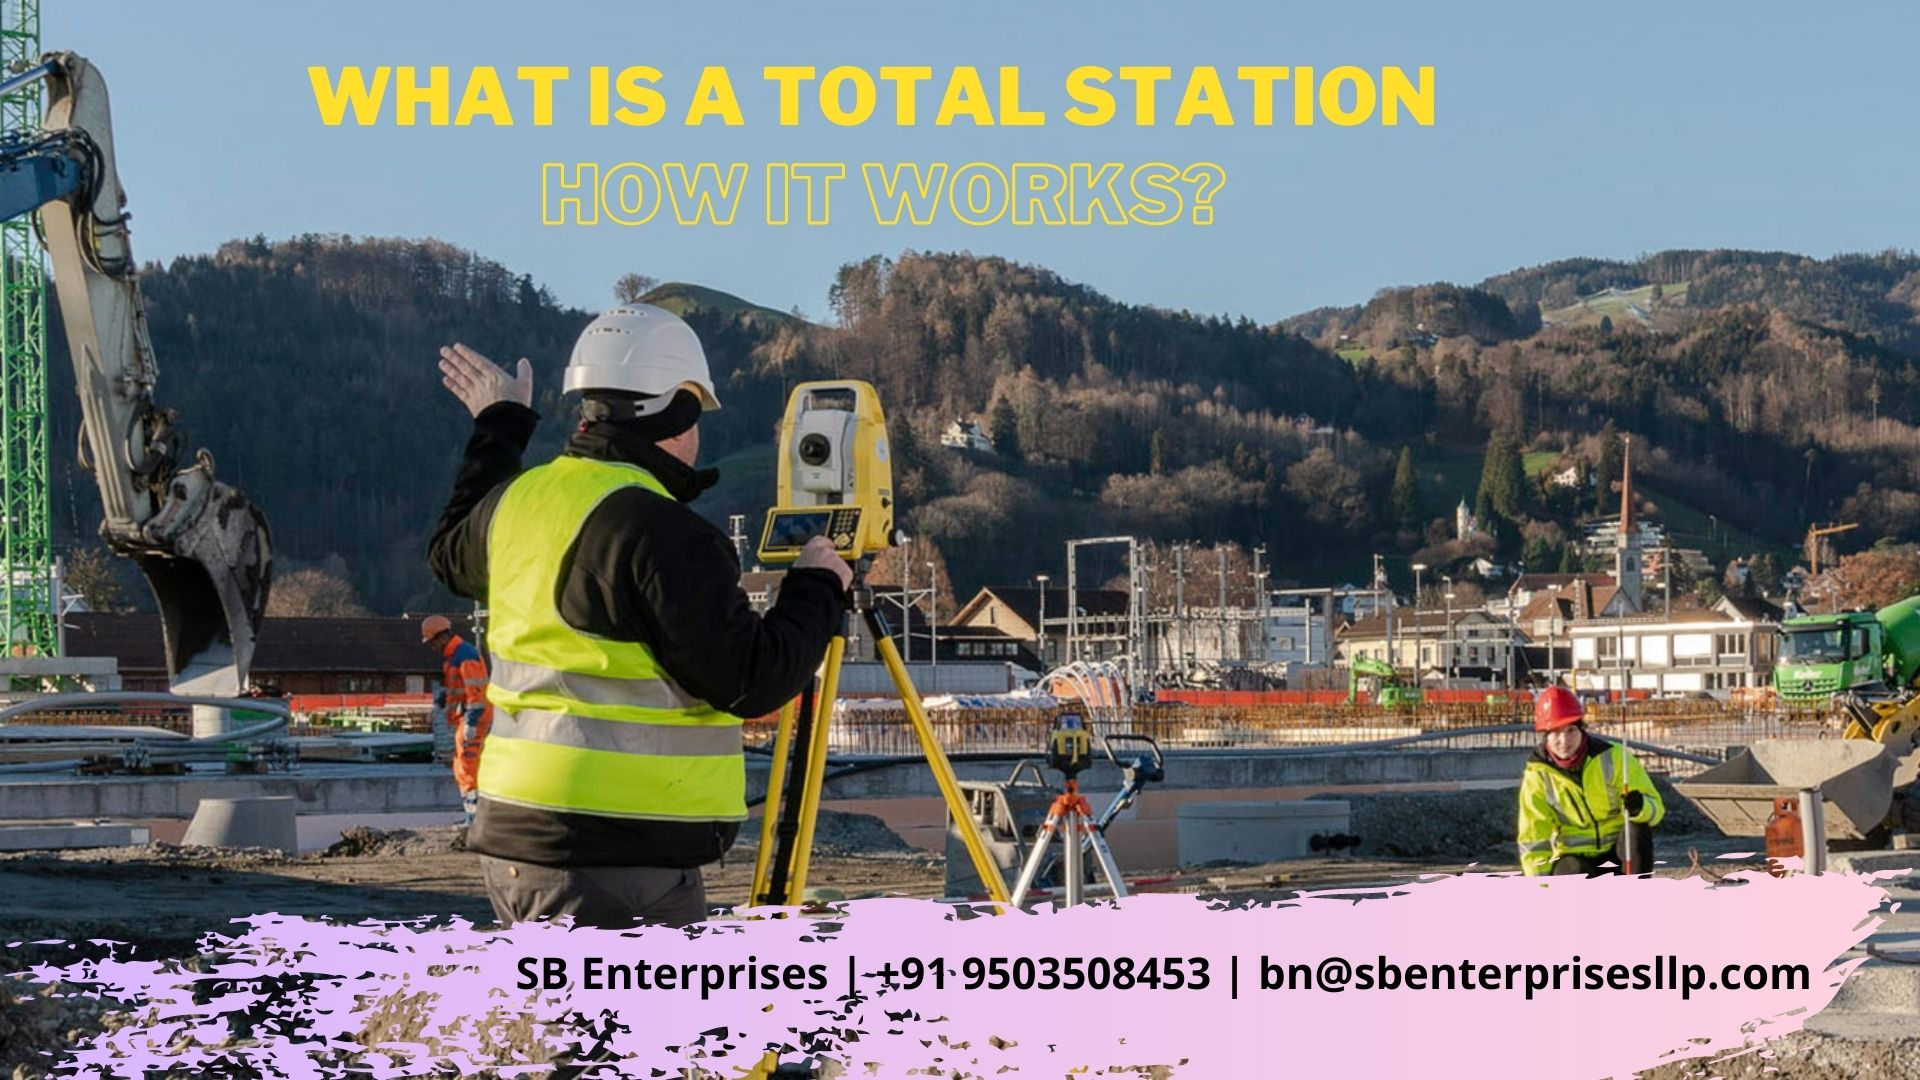 What is a total station and how it works?